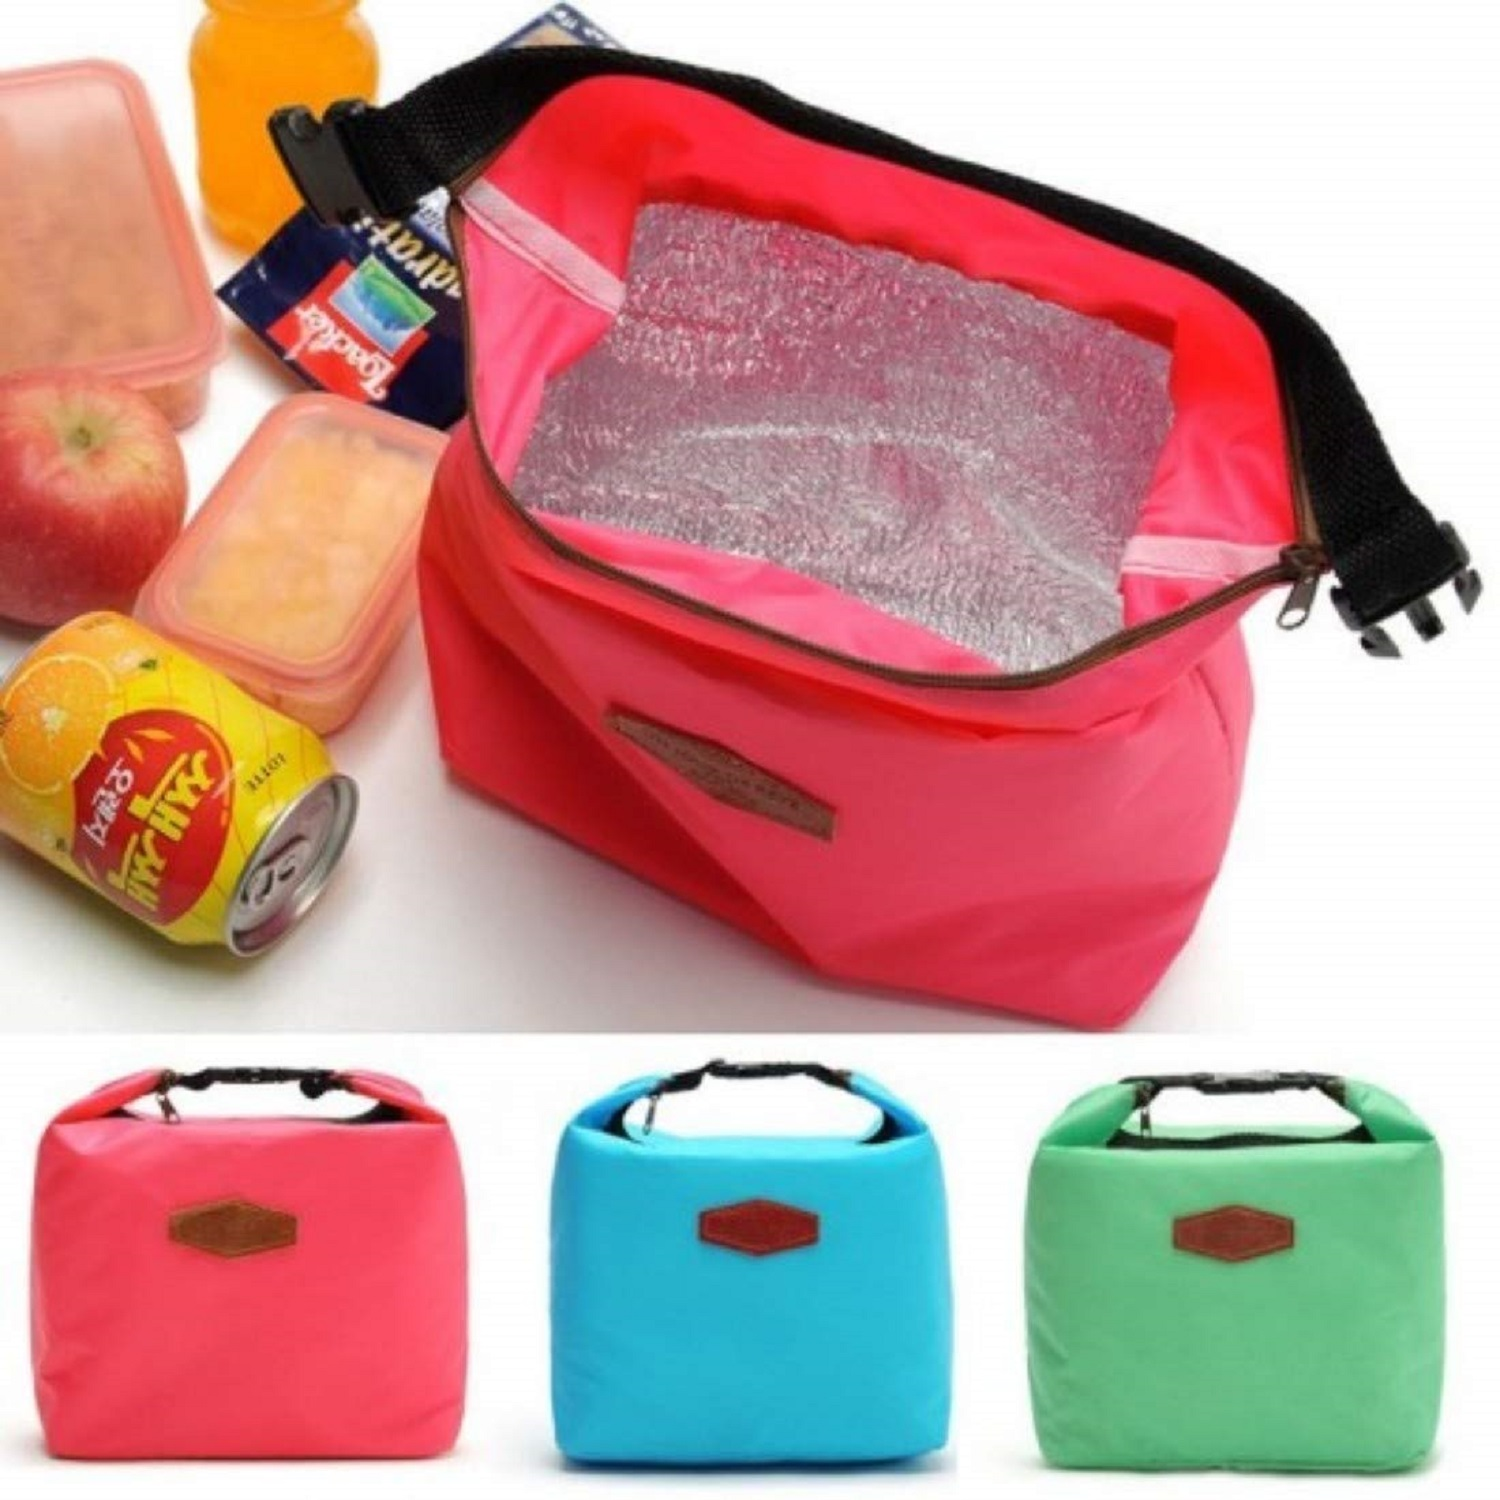 Lunch Box Storage Bag